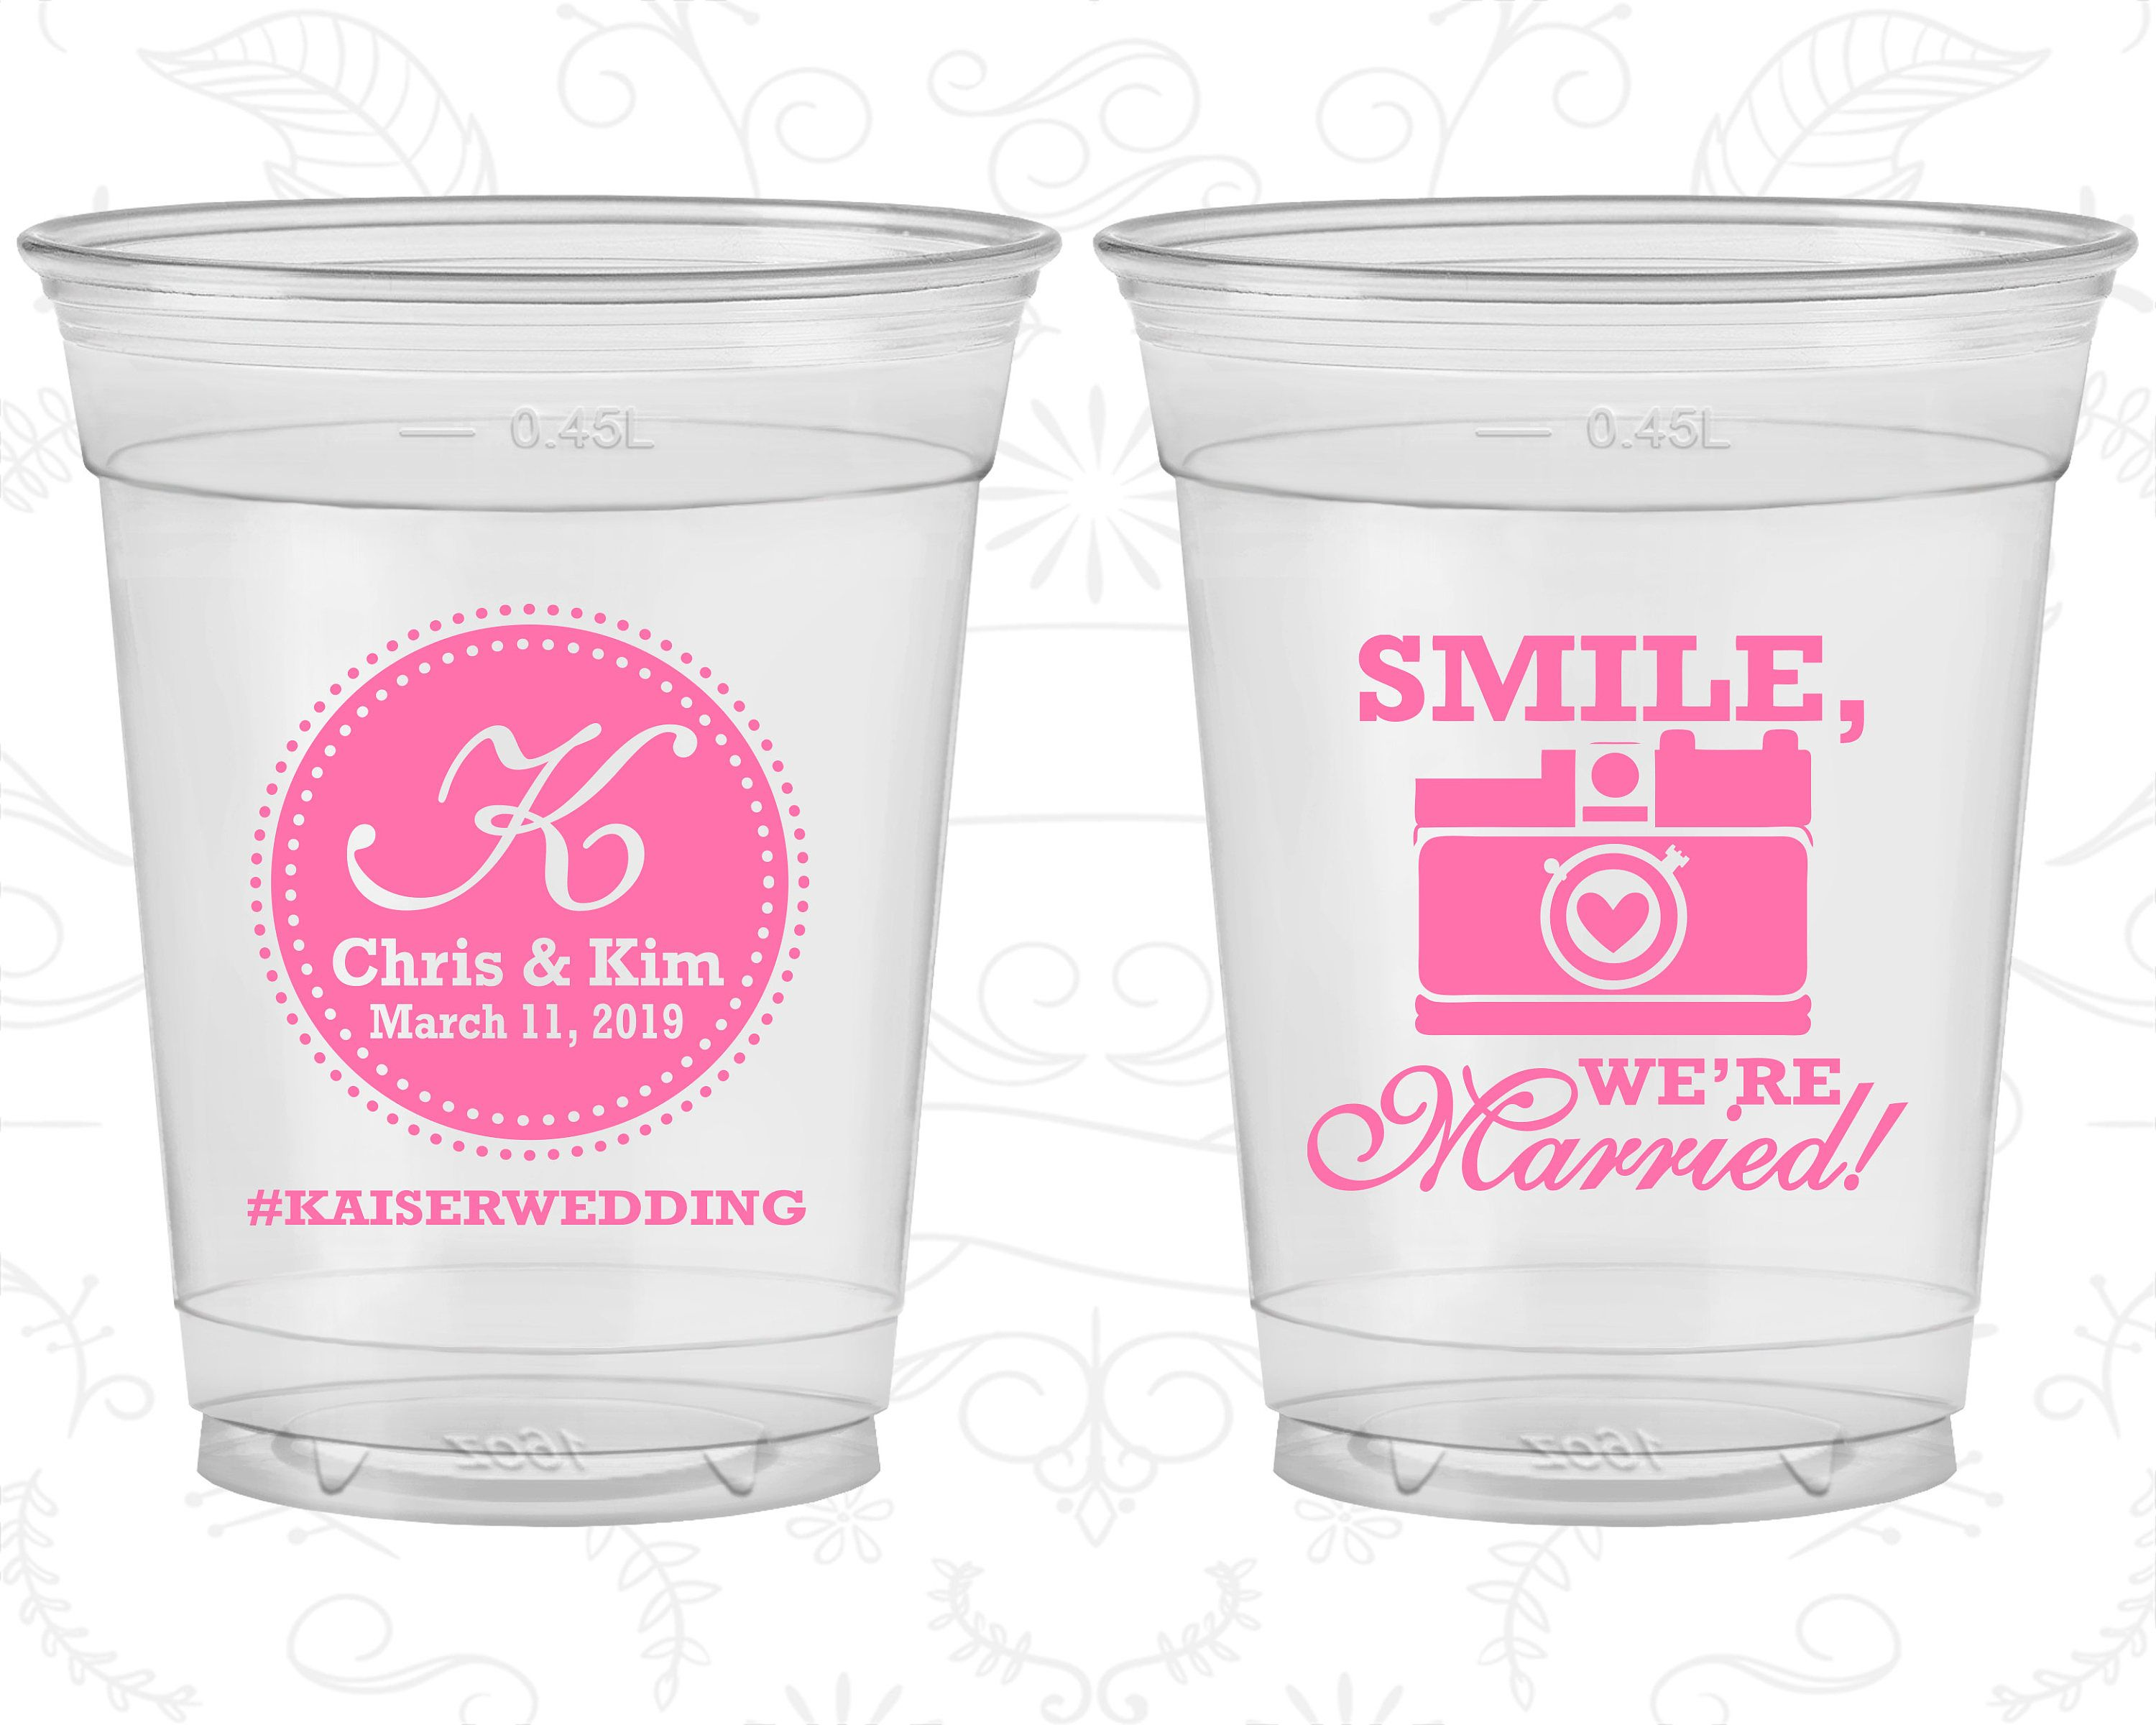 Smile We are Married, Wedding Favor Soft Sided Cups, Hashtag Wedding ...